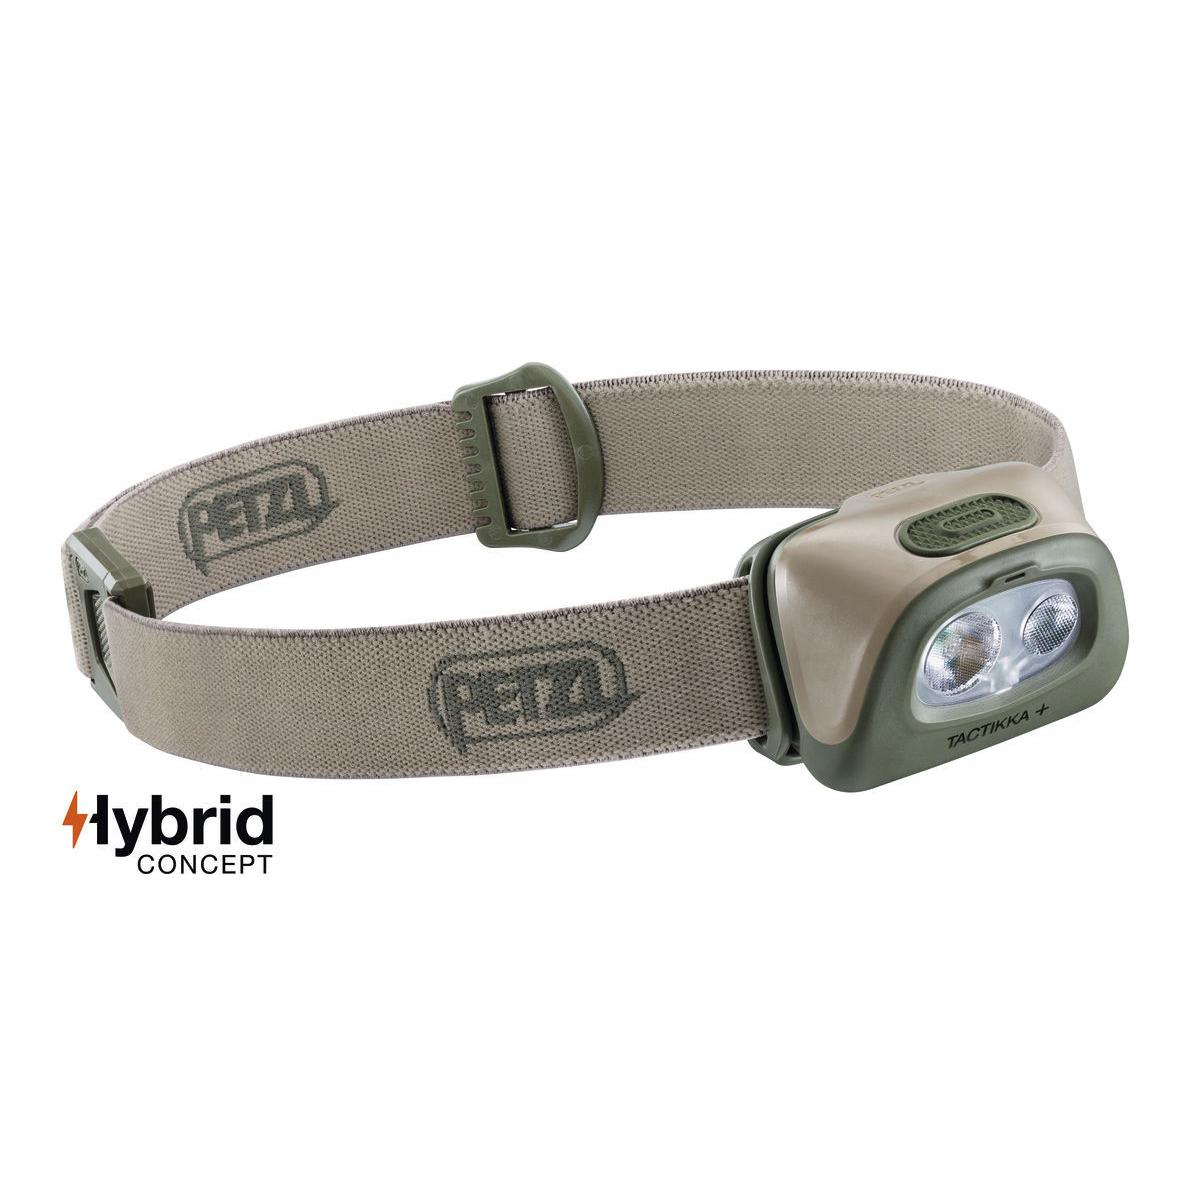 Petzl TACTIKKA+ 350 Lumens Headlamp